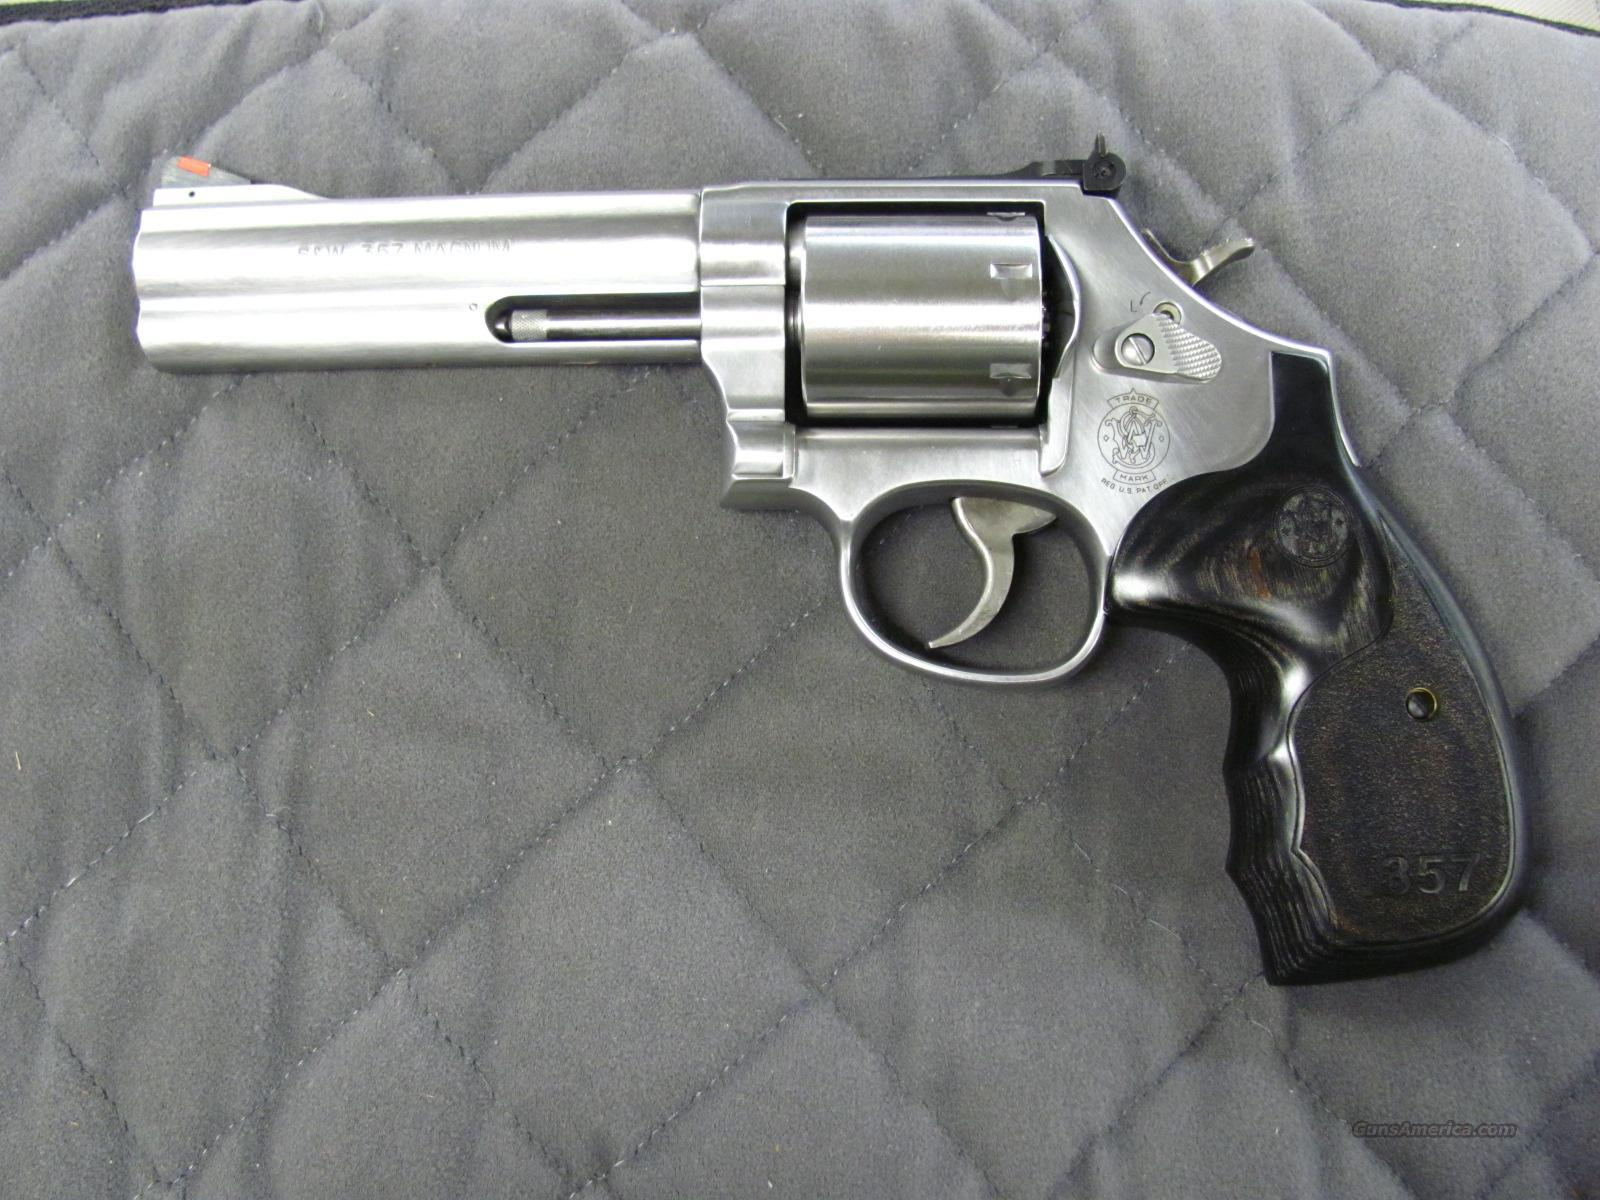 Smith & Wesson Model 686 Talo 3-5-7 Series 5 Inch 357 Mag  **NEW**  Guns > Pistols > Smith & Wesson Revolvers > Full Frame Revolver